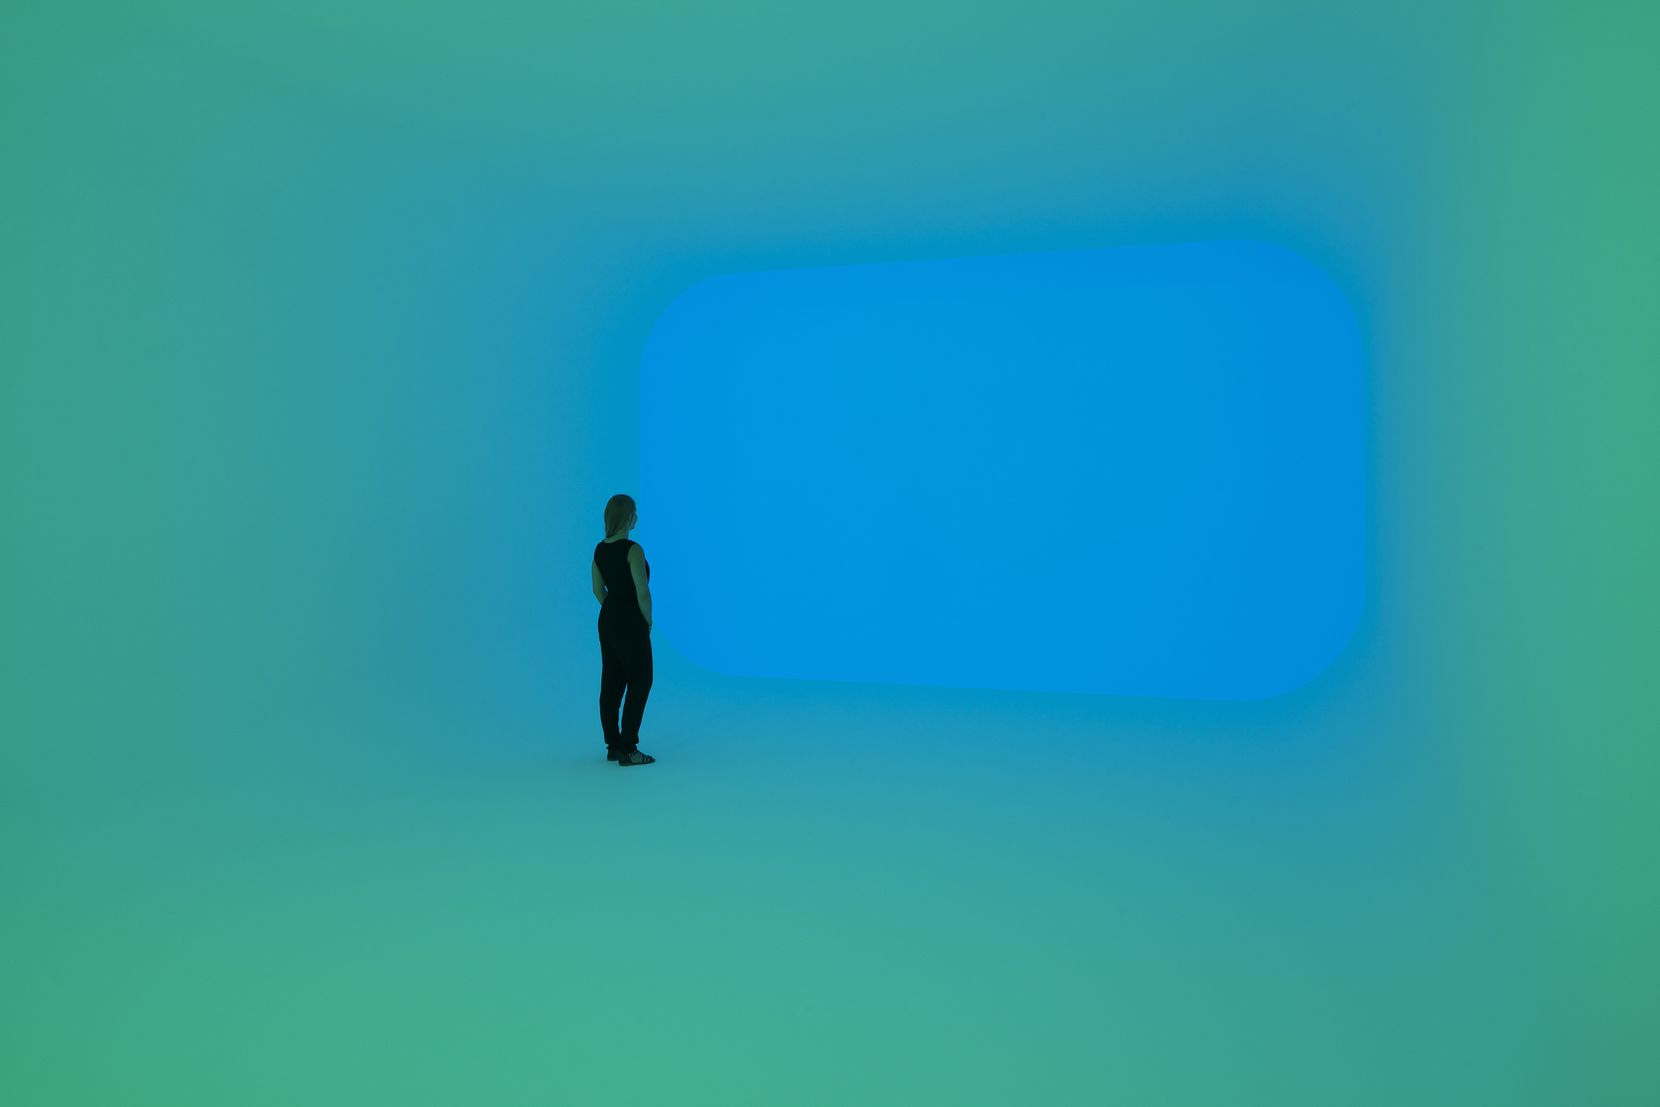 """James Turrell """"Apani,"""" one of his Ganzfeld works from 2011, uses light to overwhelm viewers' senses and create a new experience."""